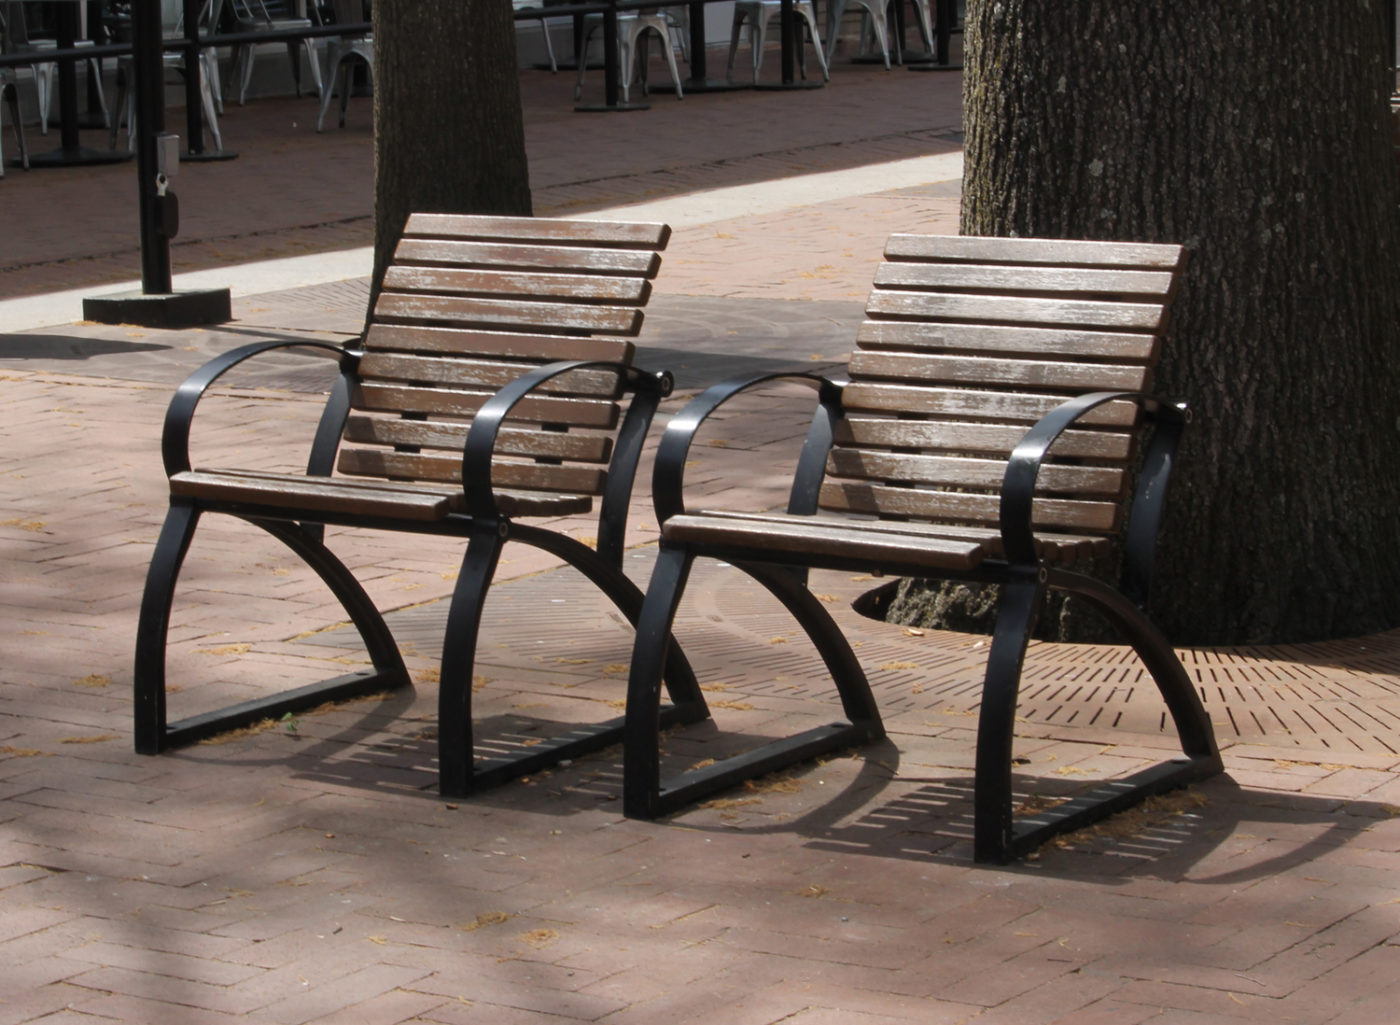 Fine Design Panel Denies Backless Benches For Downtown Mall Evergreenethics Interior Chair Design Evergreenethicsorg